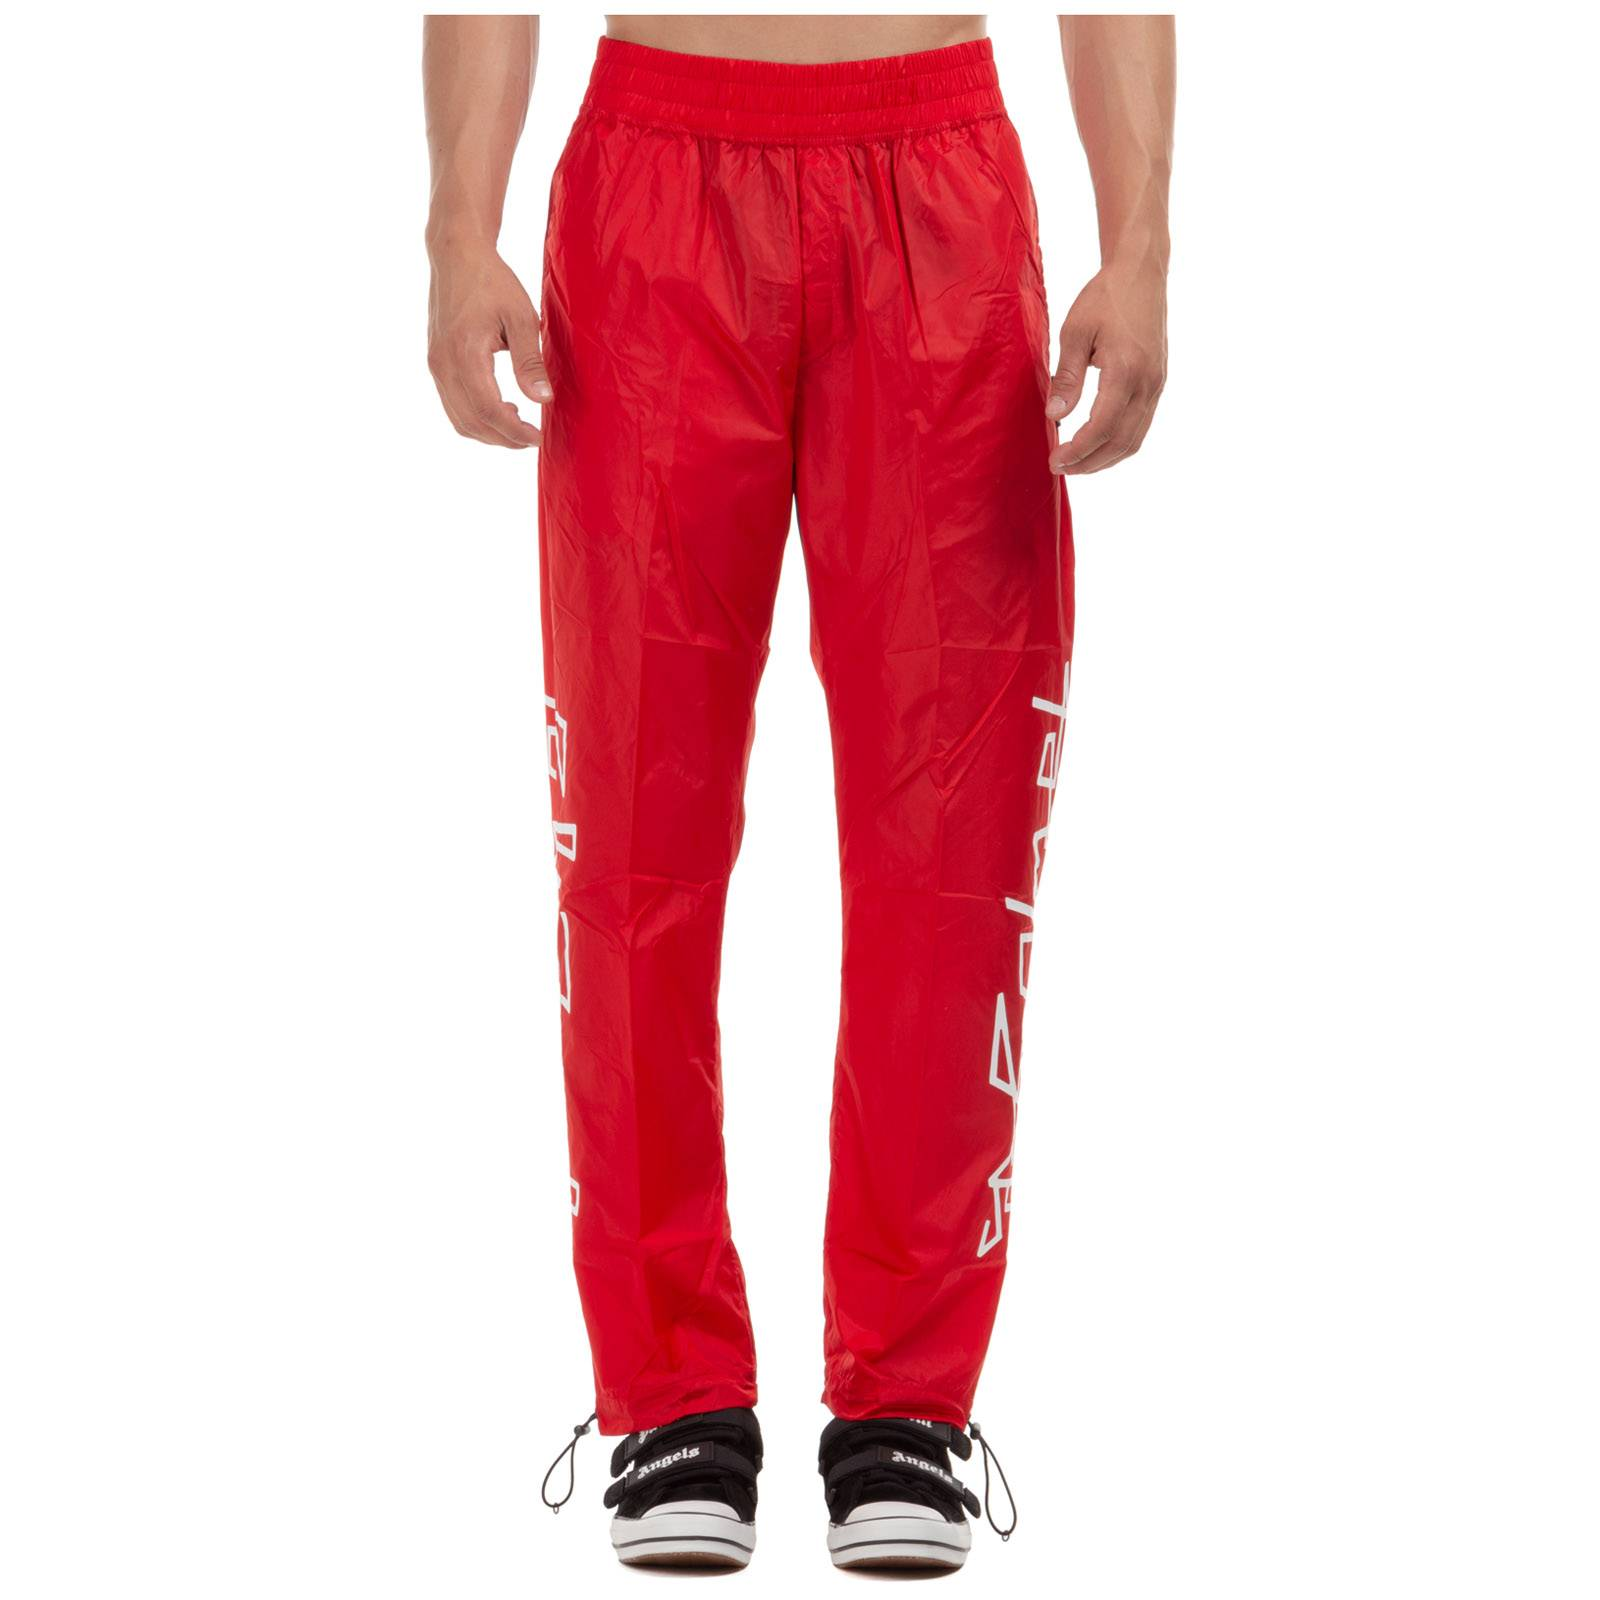 Palm Men's sport tracksuit trousers desert logo  - Red - Size: Small